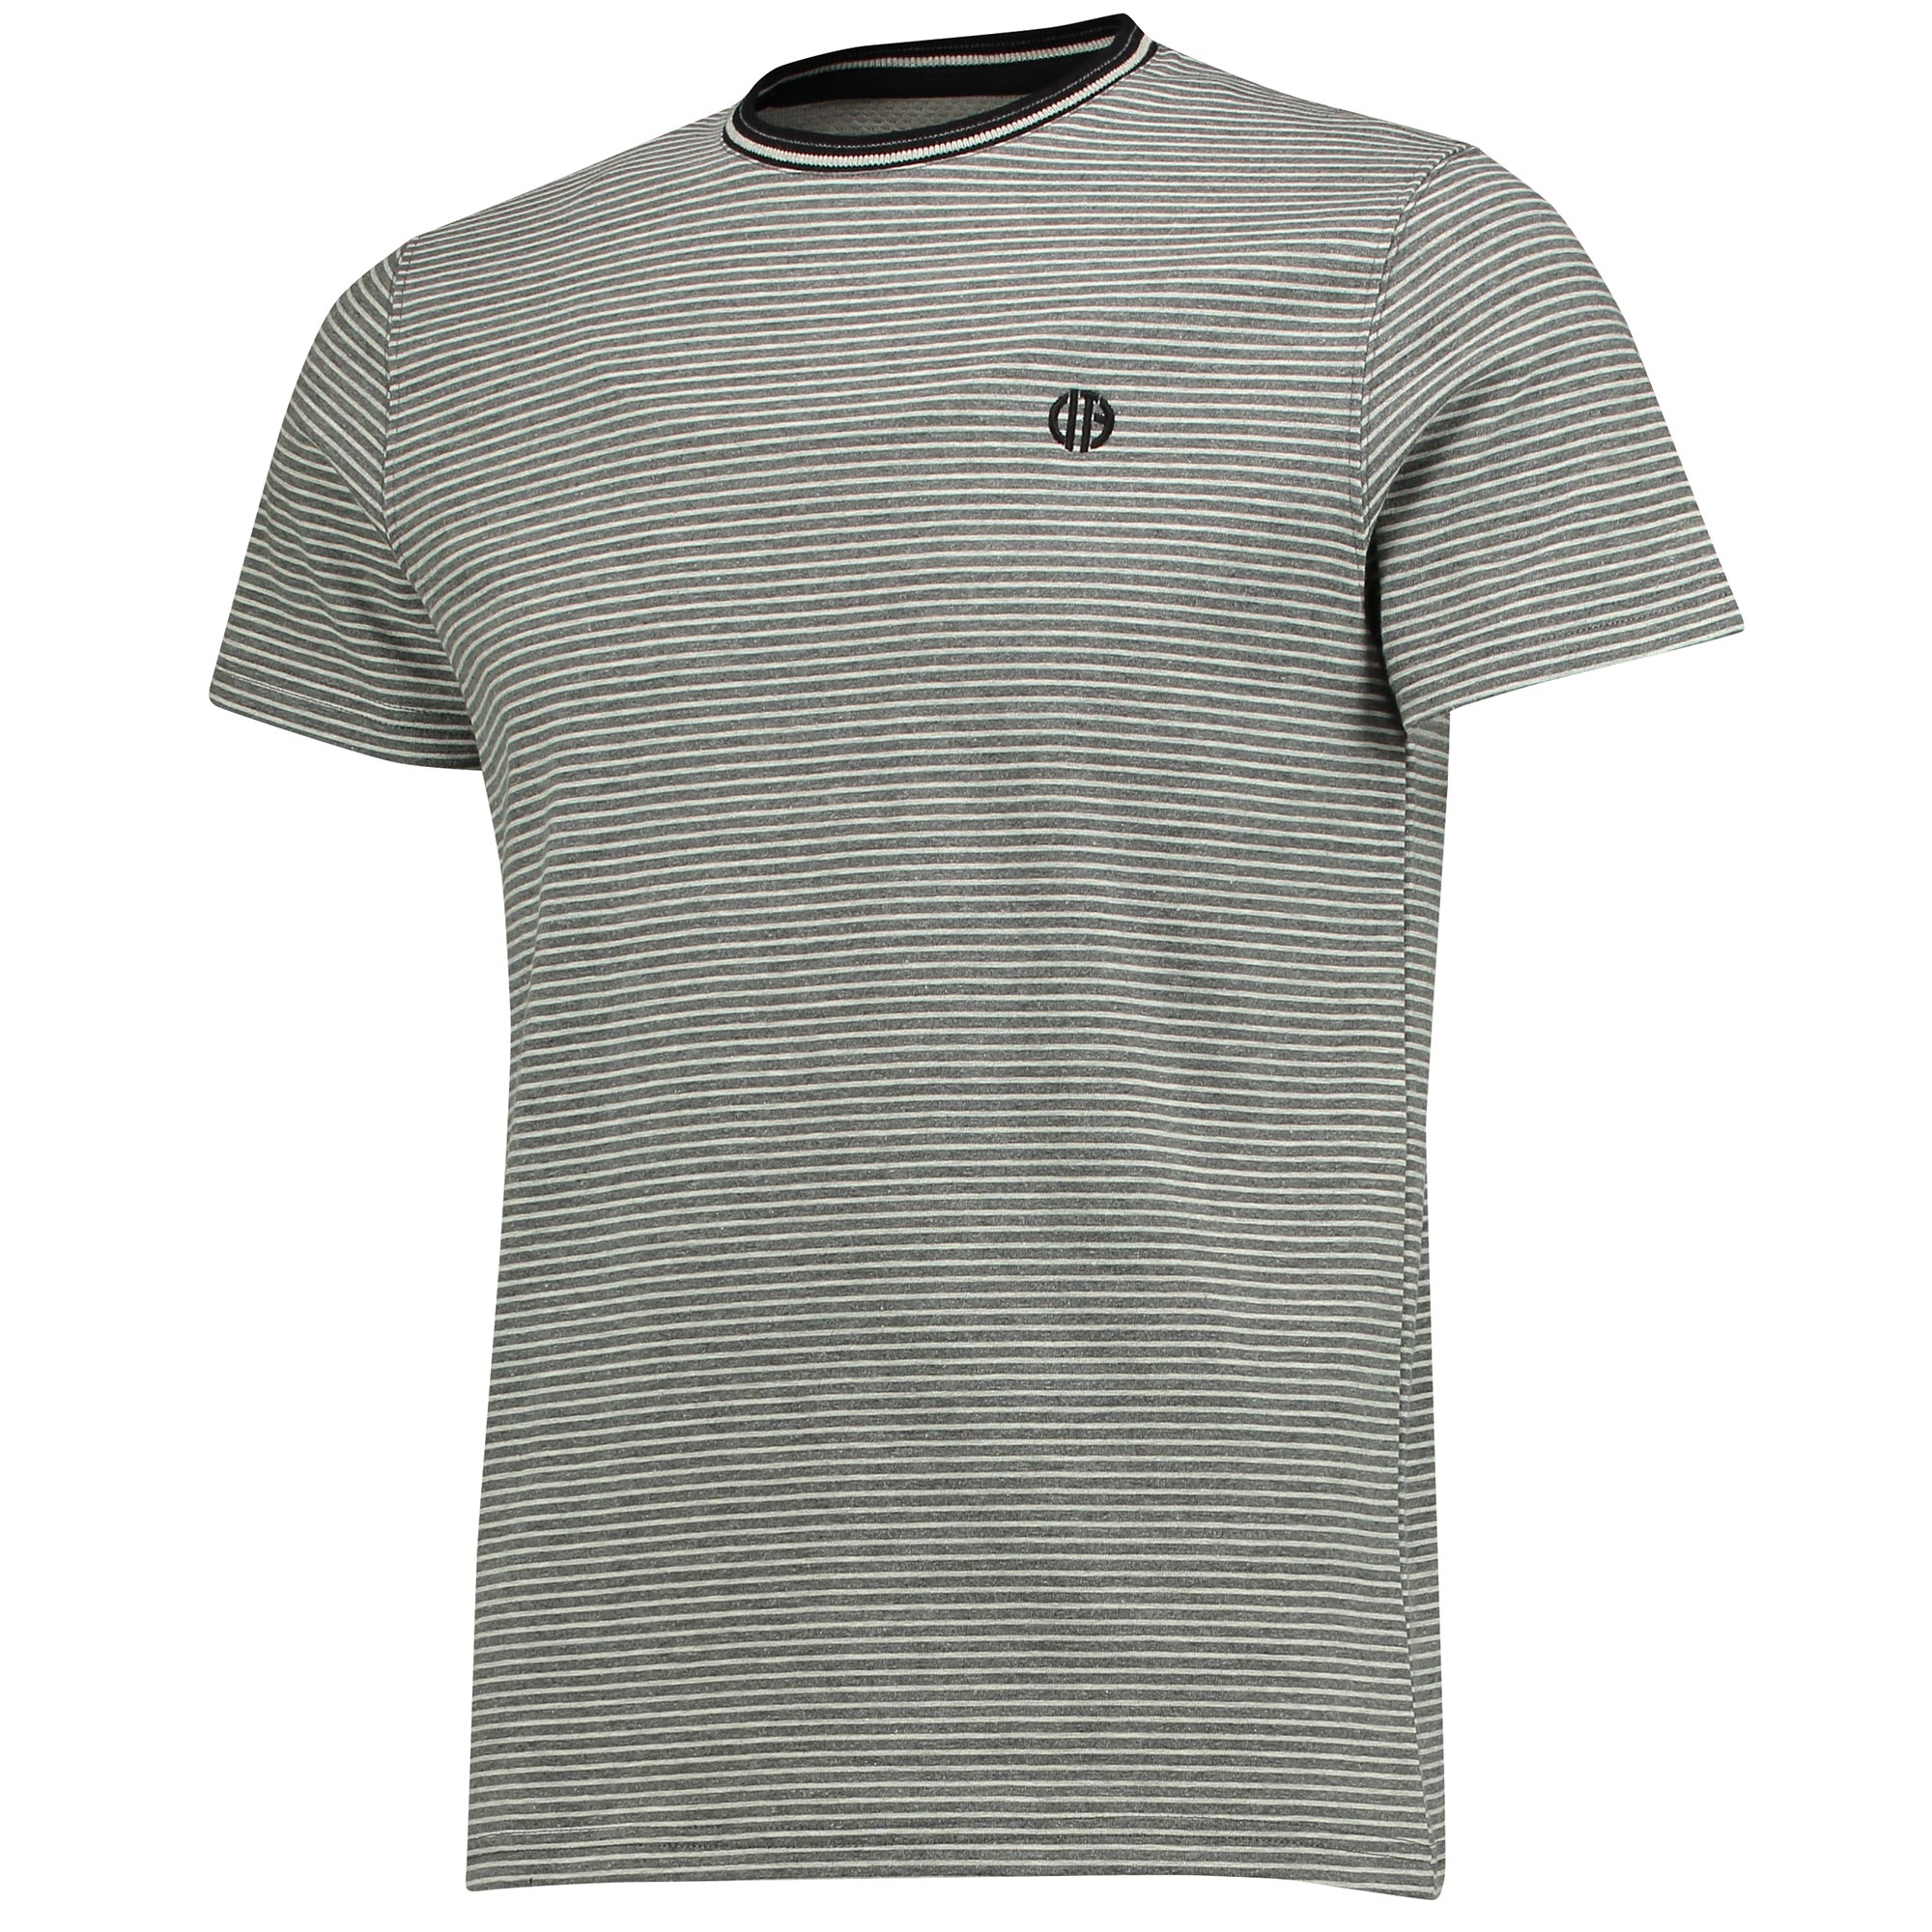 Manchester City Terrace T-Shirt - Grey Marl